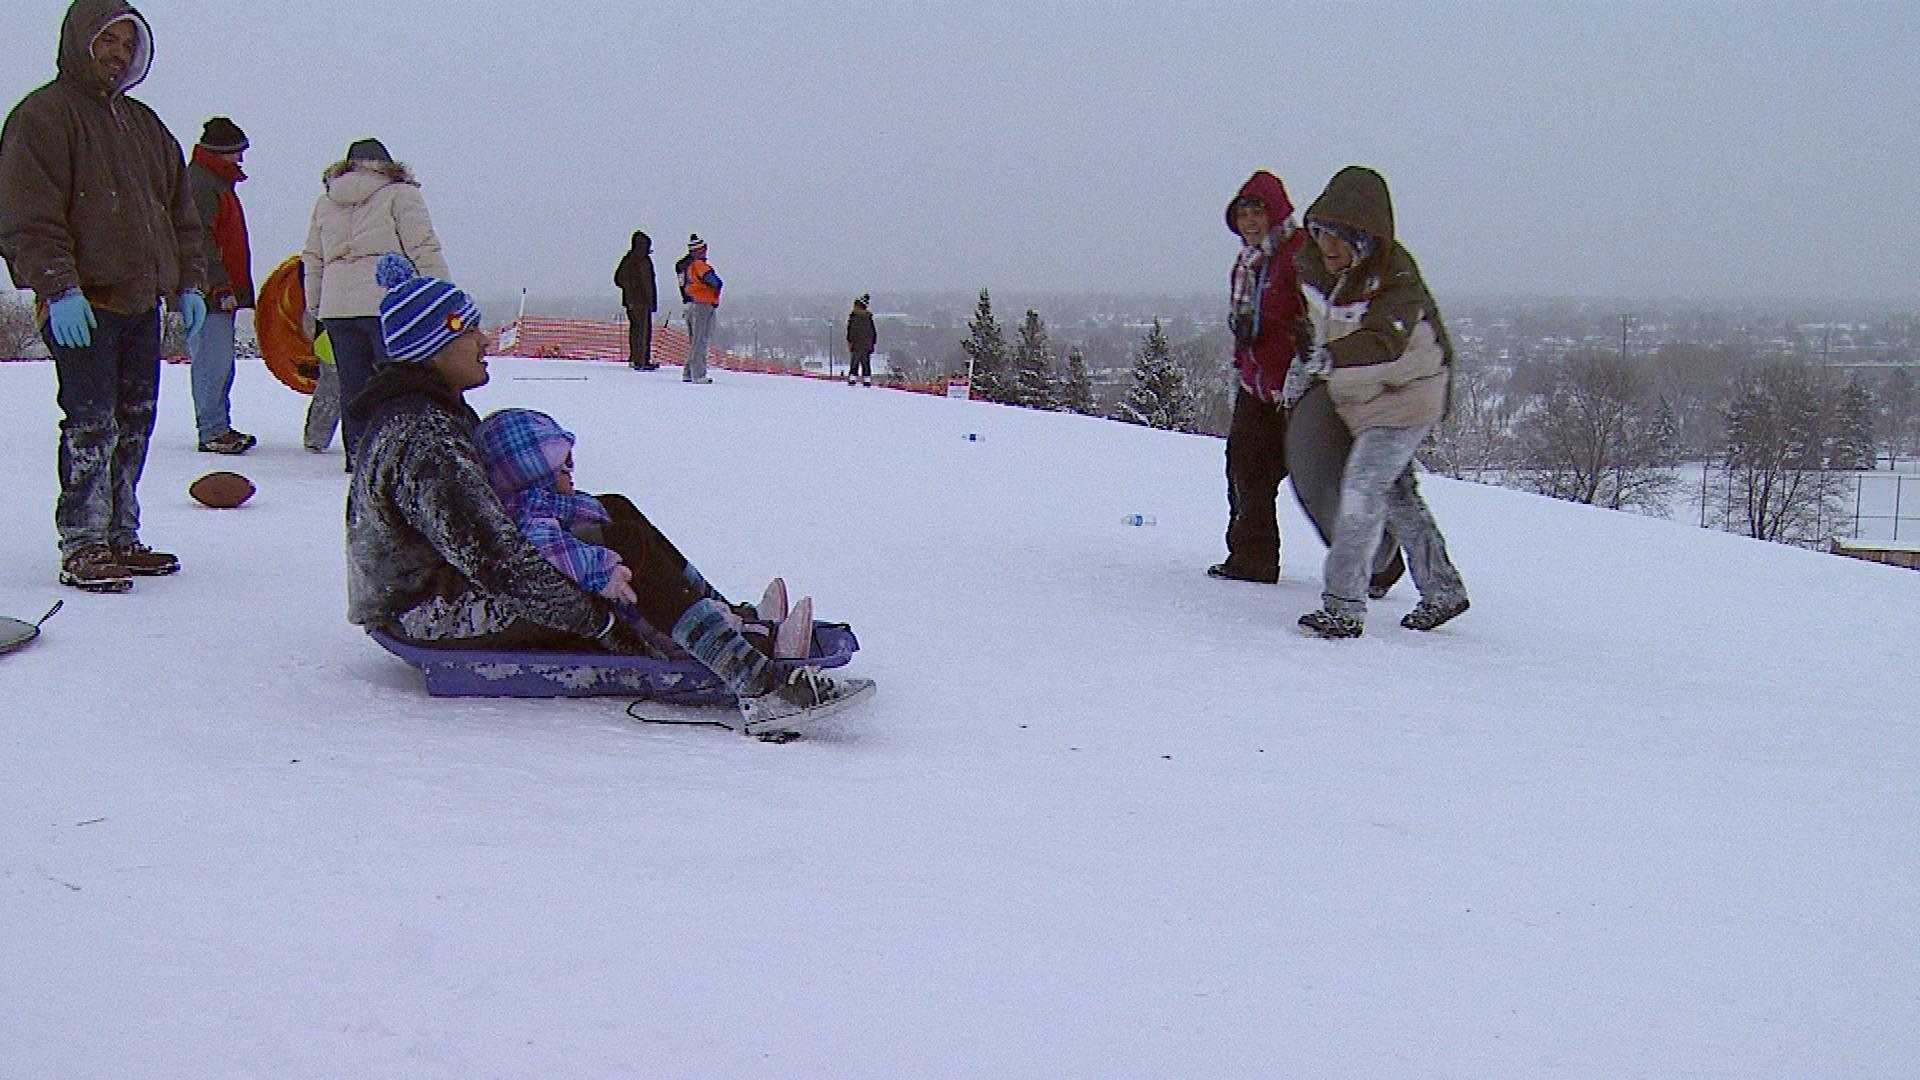 Sledding in Denver on Thursday at Ruby Hill (credit: CBS)